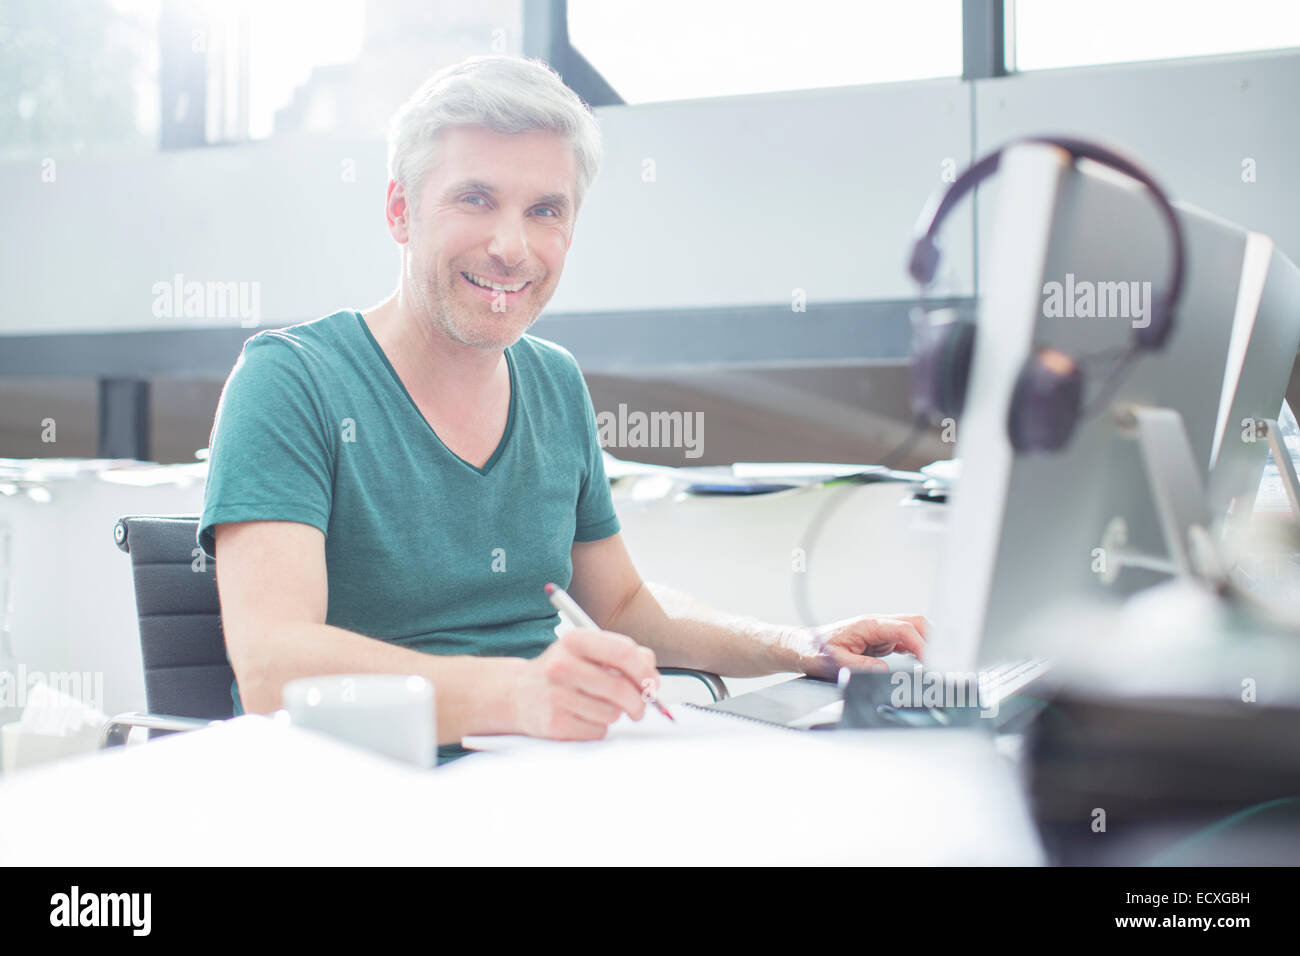 Older man working on computer at desk - Stock Image